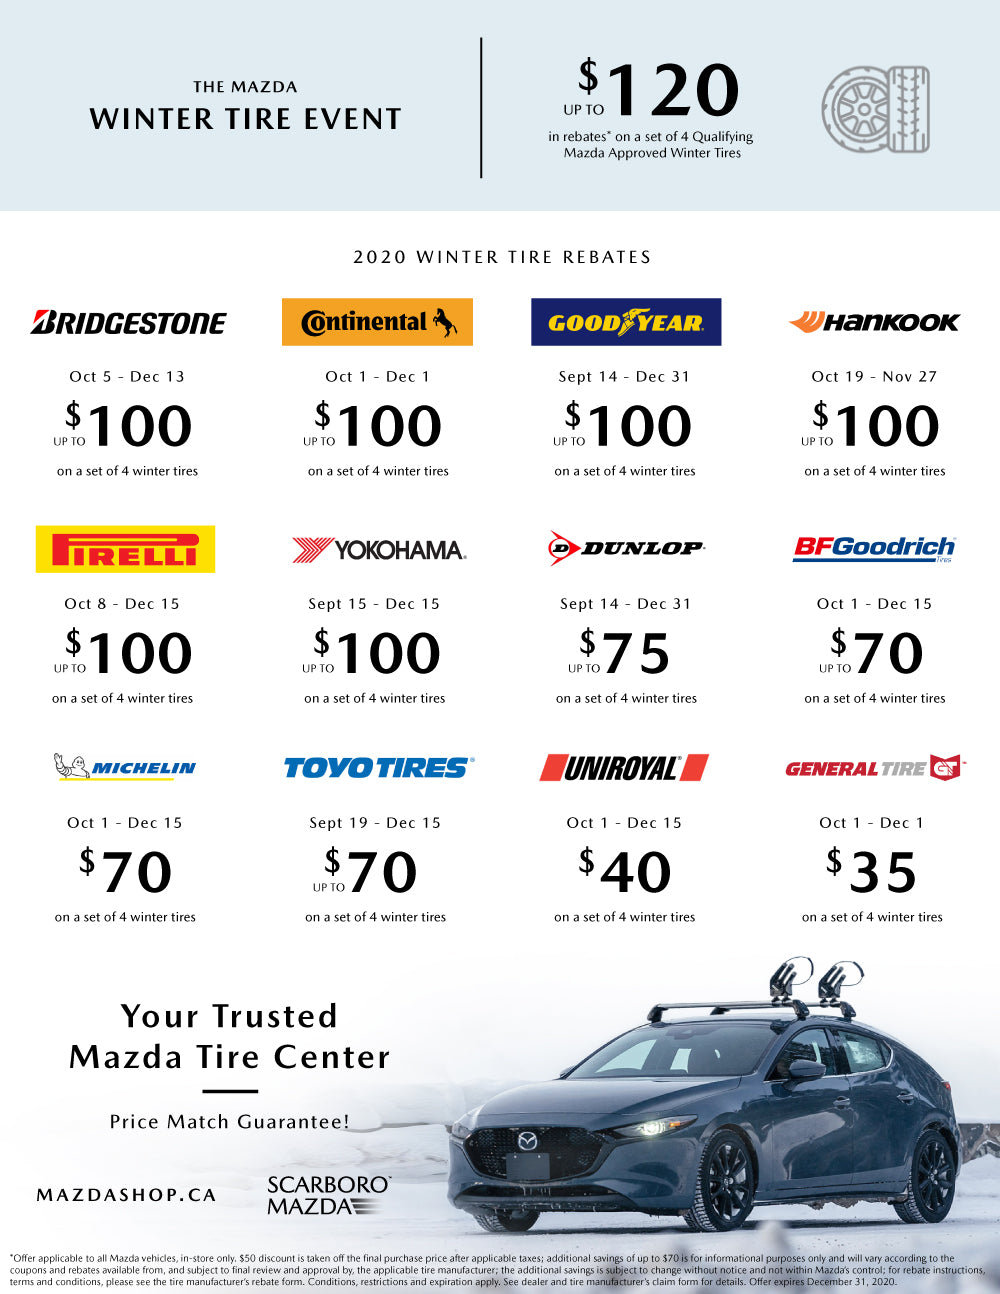 MazdaShop Winter Tire Rebates List 2020